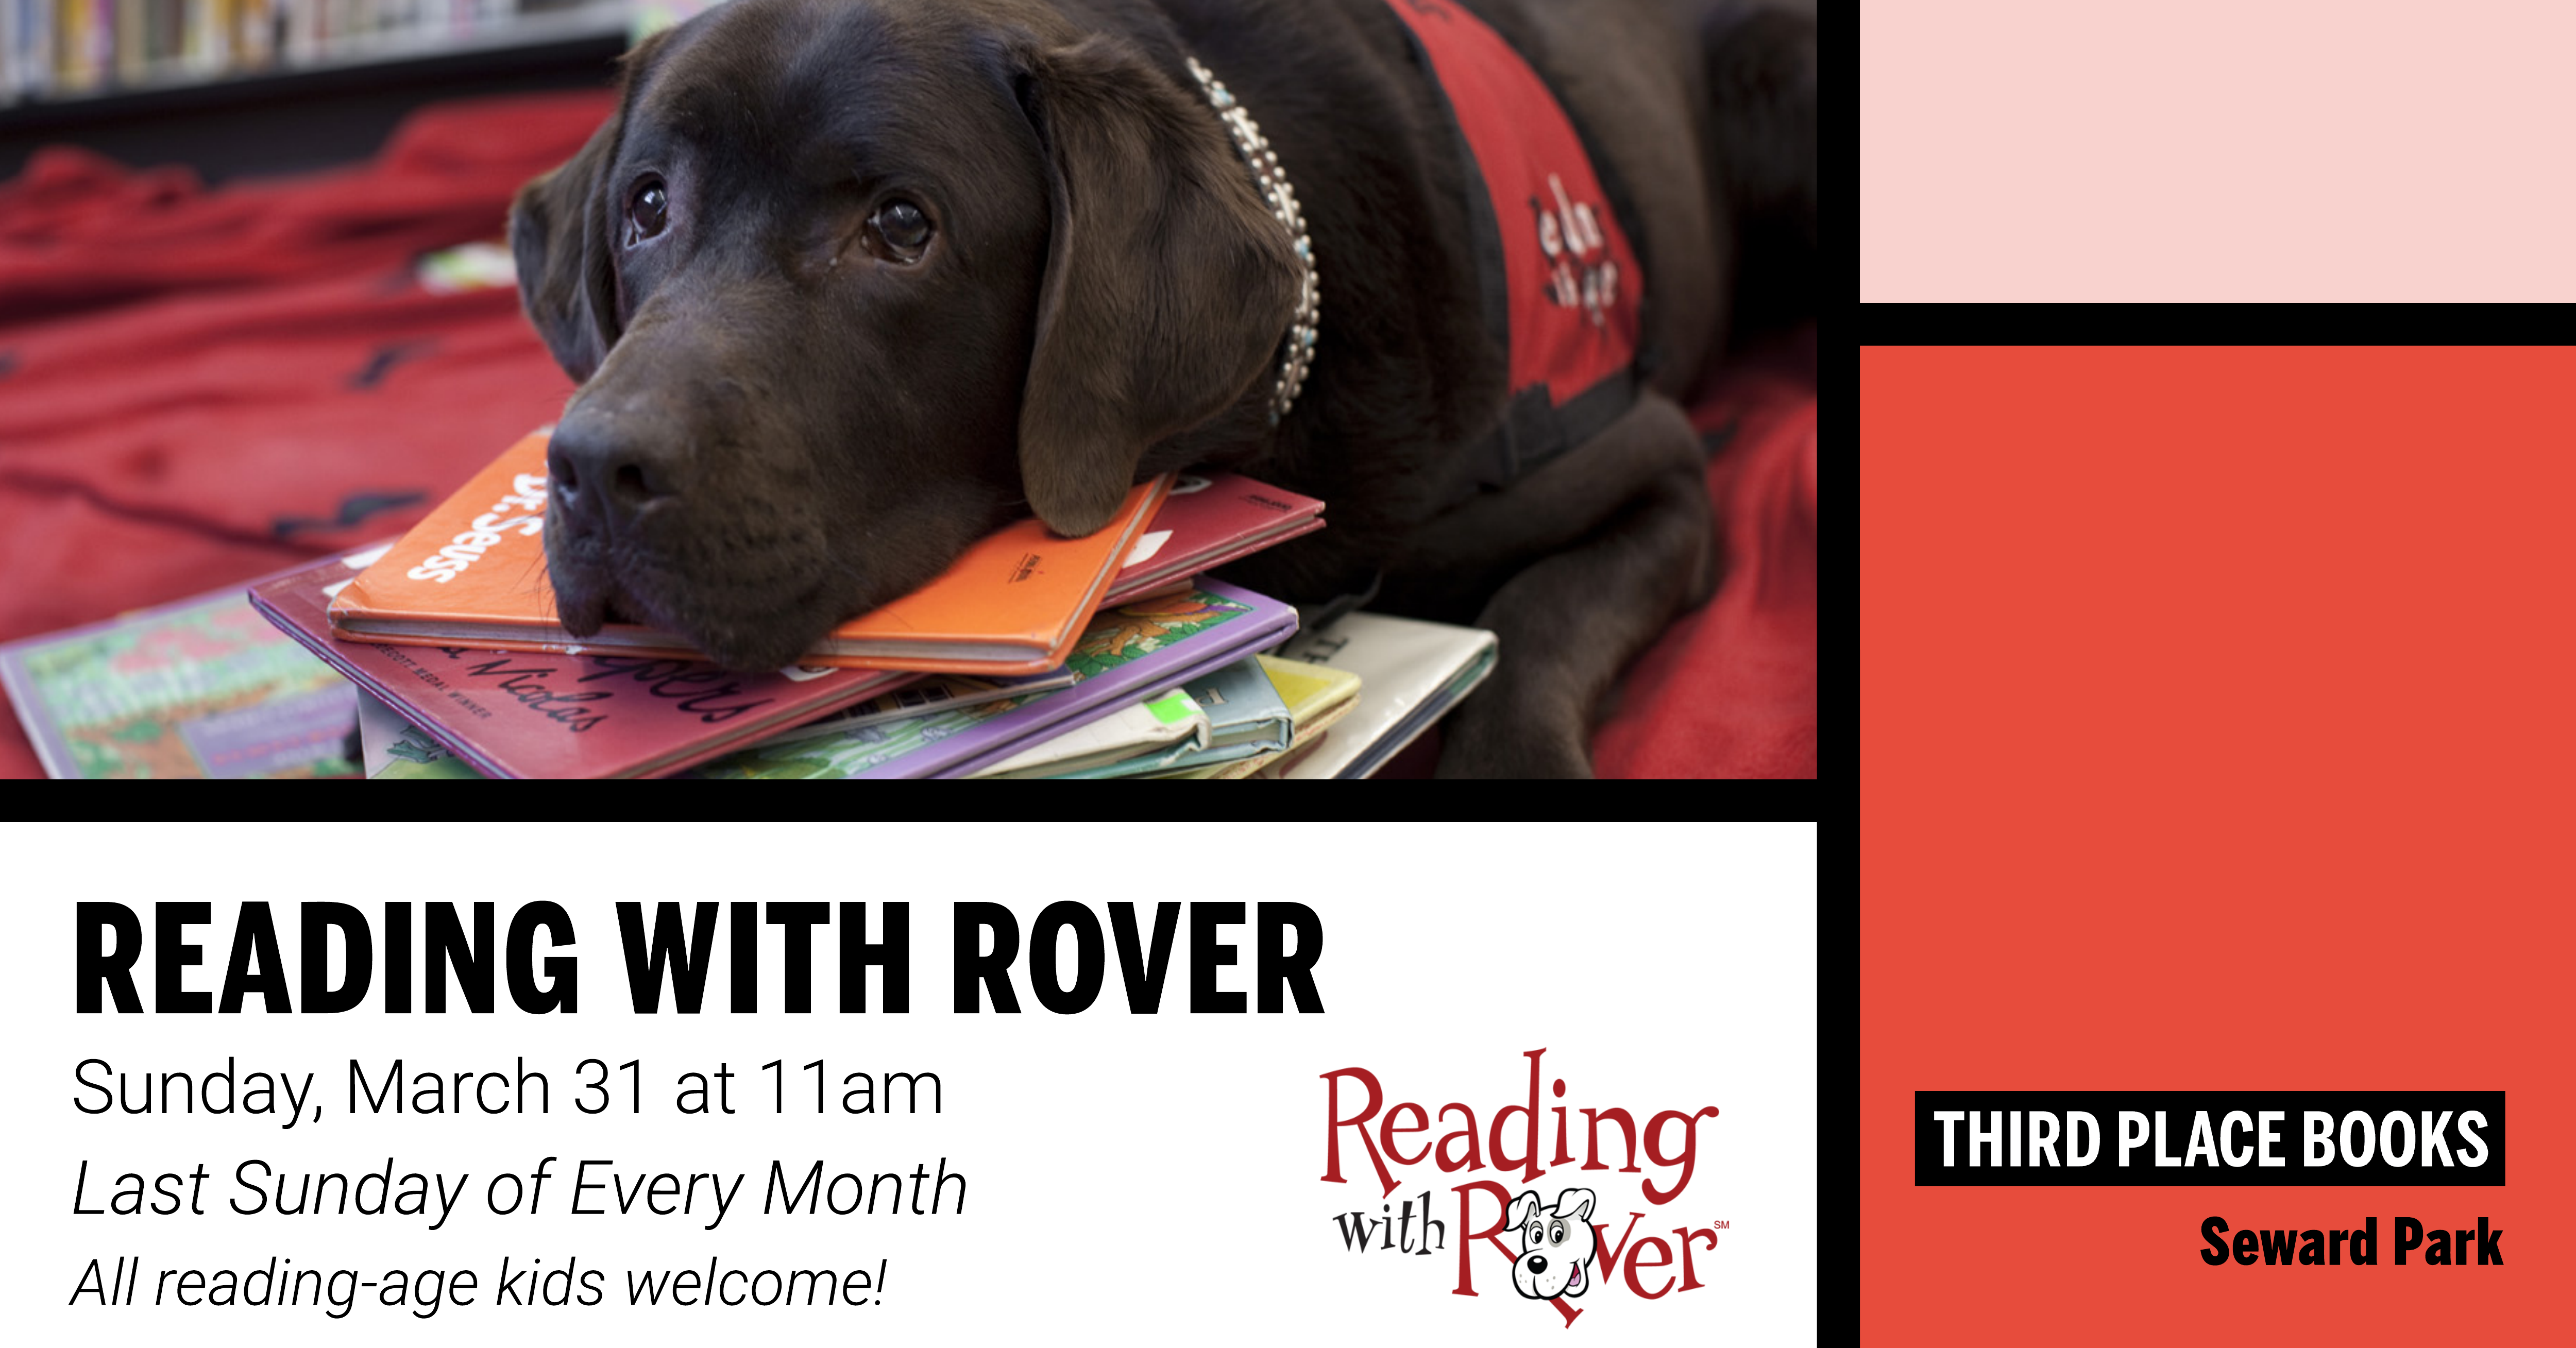 Reading With Rover! on Sunday, March 31 at 11am